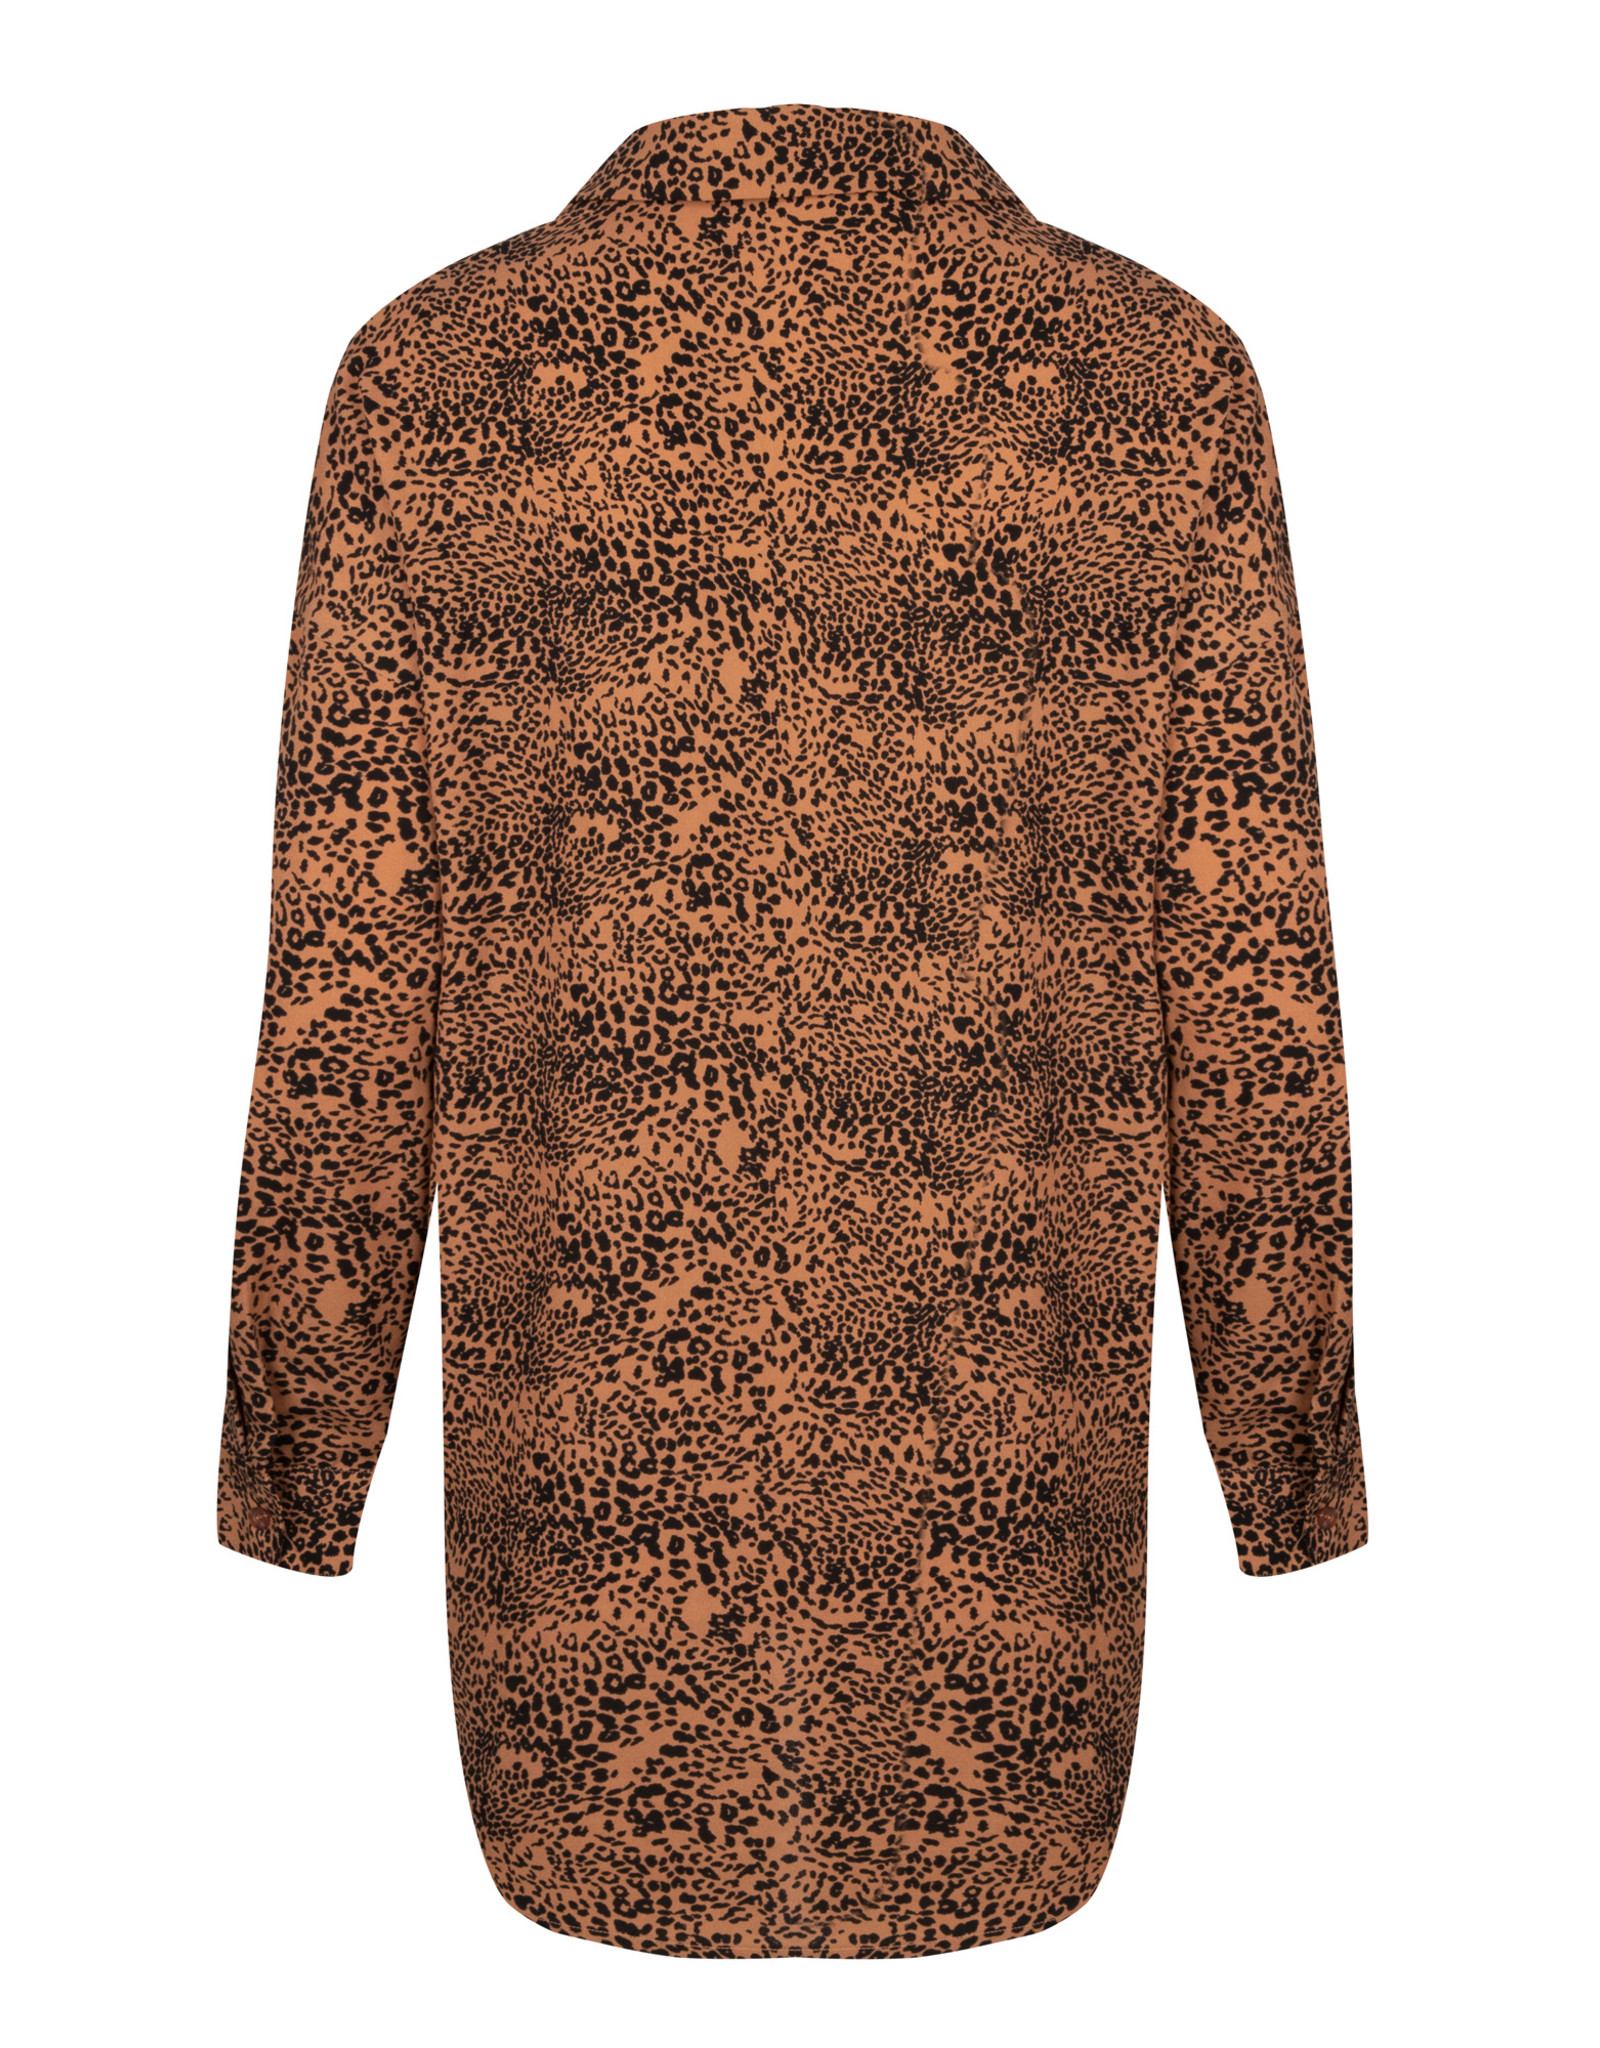 AMBER LEO BLOUSE BROWN